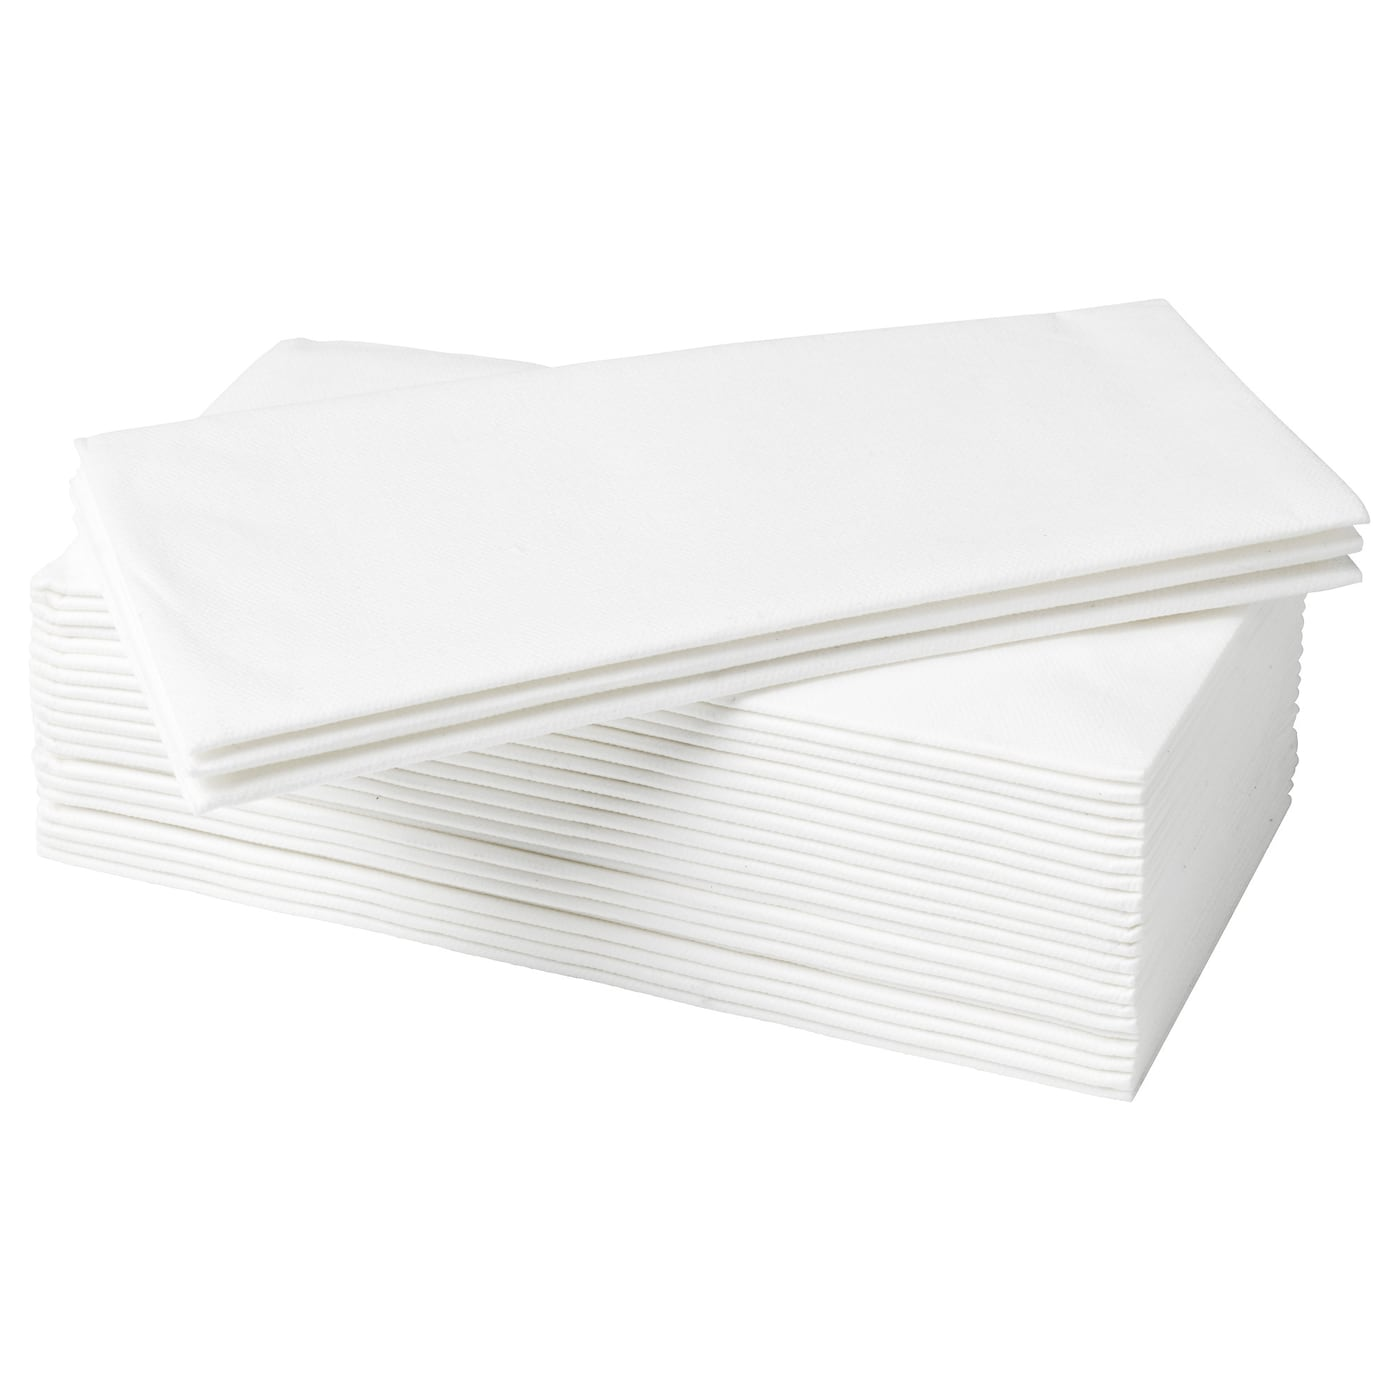 IKEA MOTTAGA paper napkin Has a paper quality that looks and feels like textile napkins.